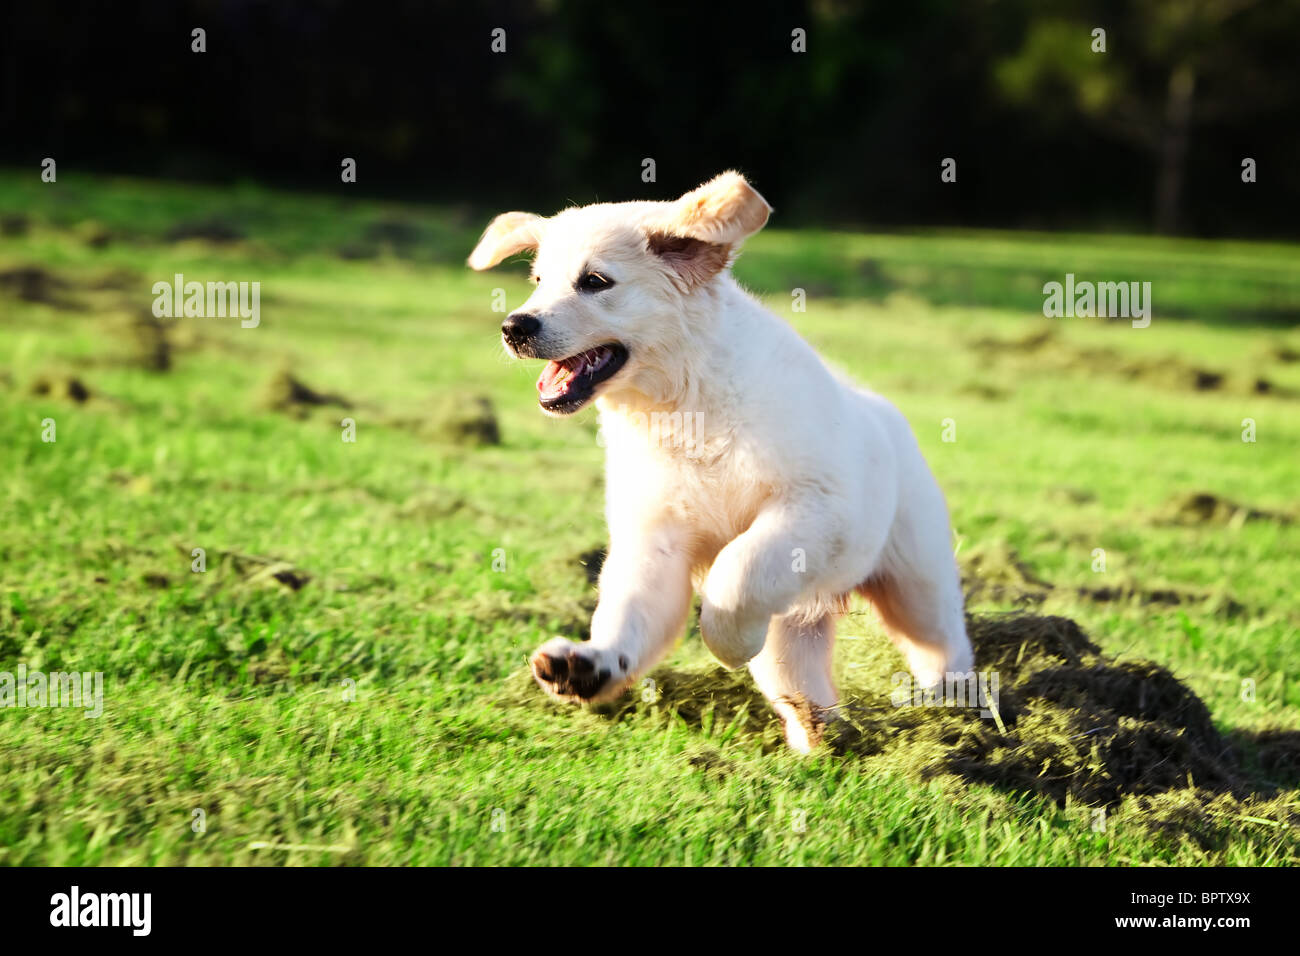 Golden retriever puppy running and jumping in the grass - Stock Image